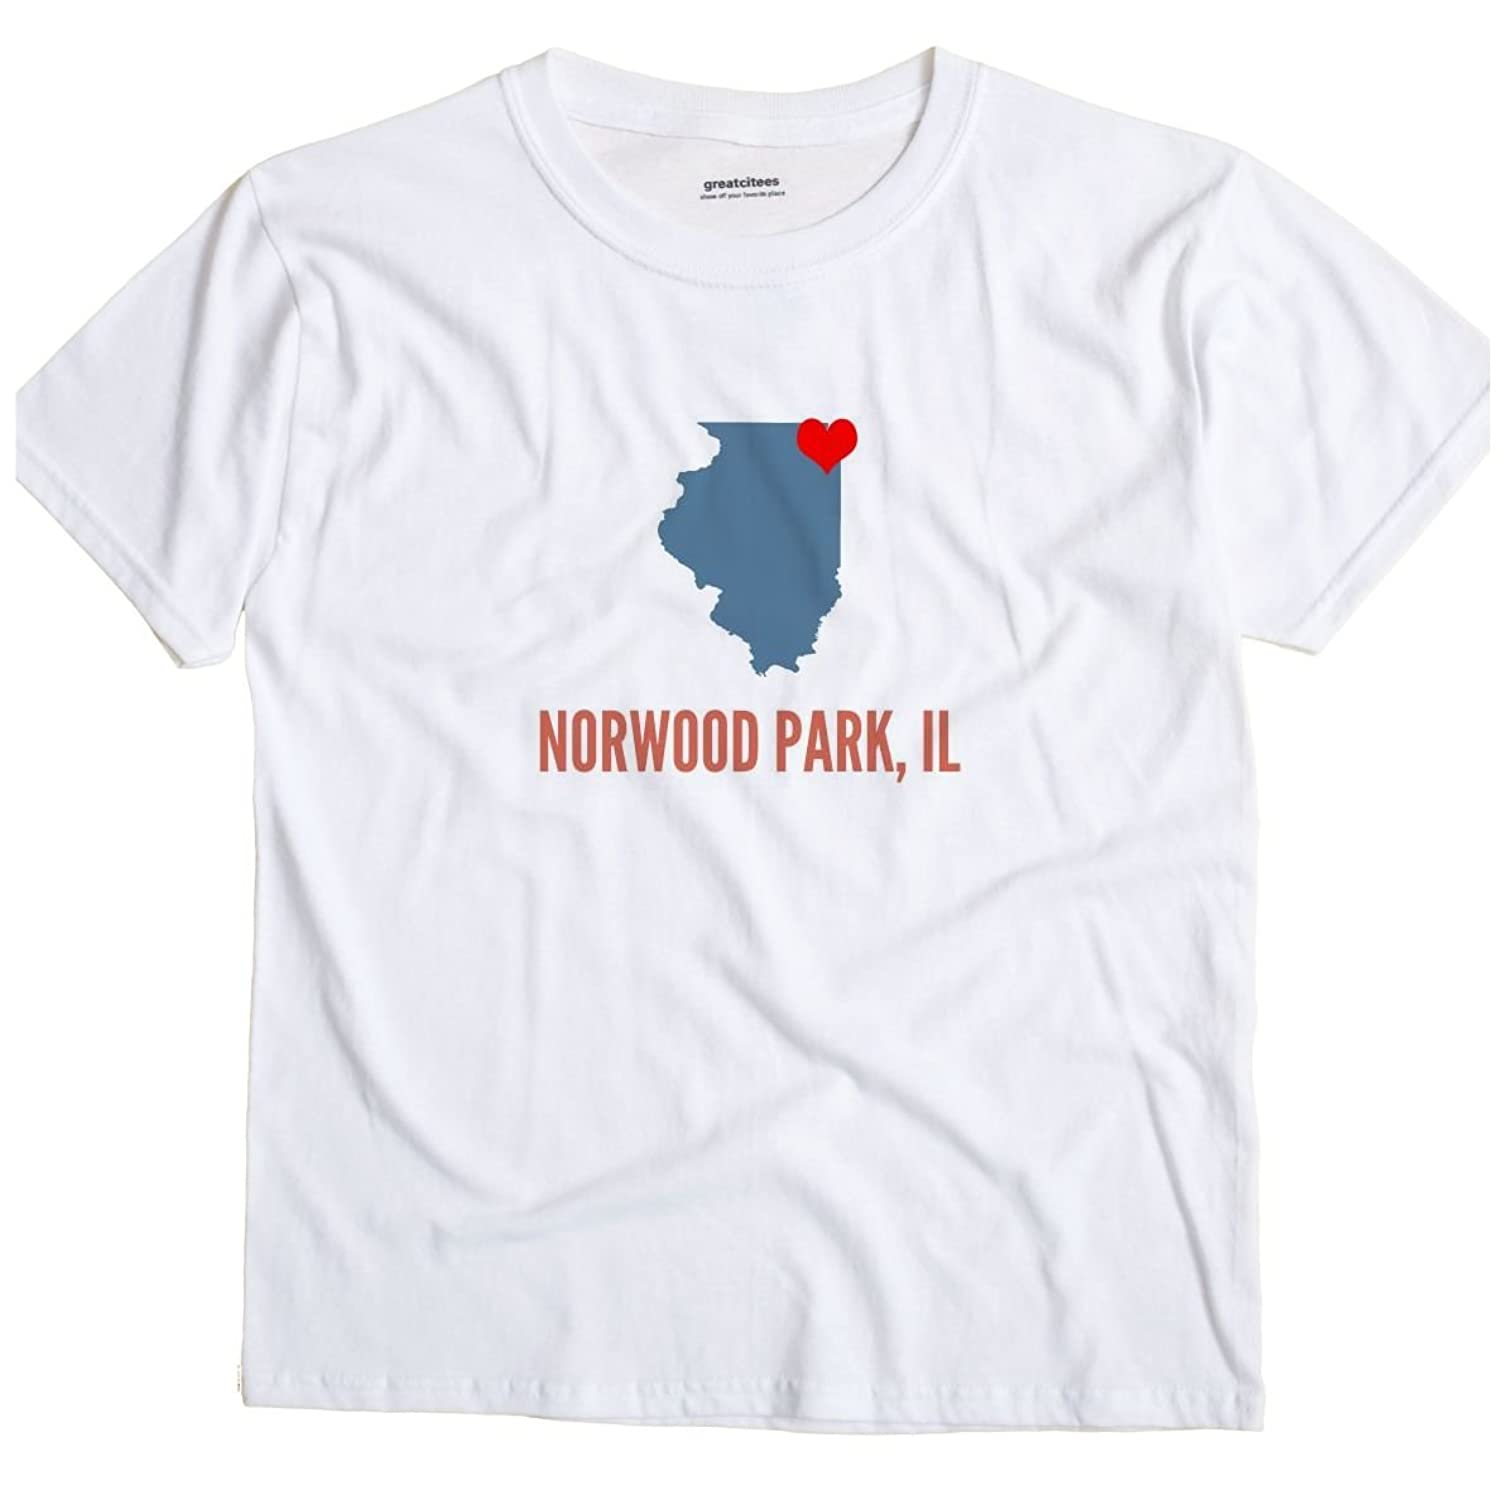 Norwood Park Illinois IL, Neighborhood of Chicago HEART GreatCitees T Shirt